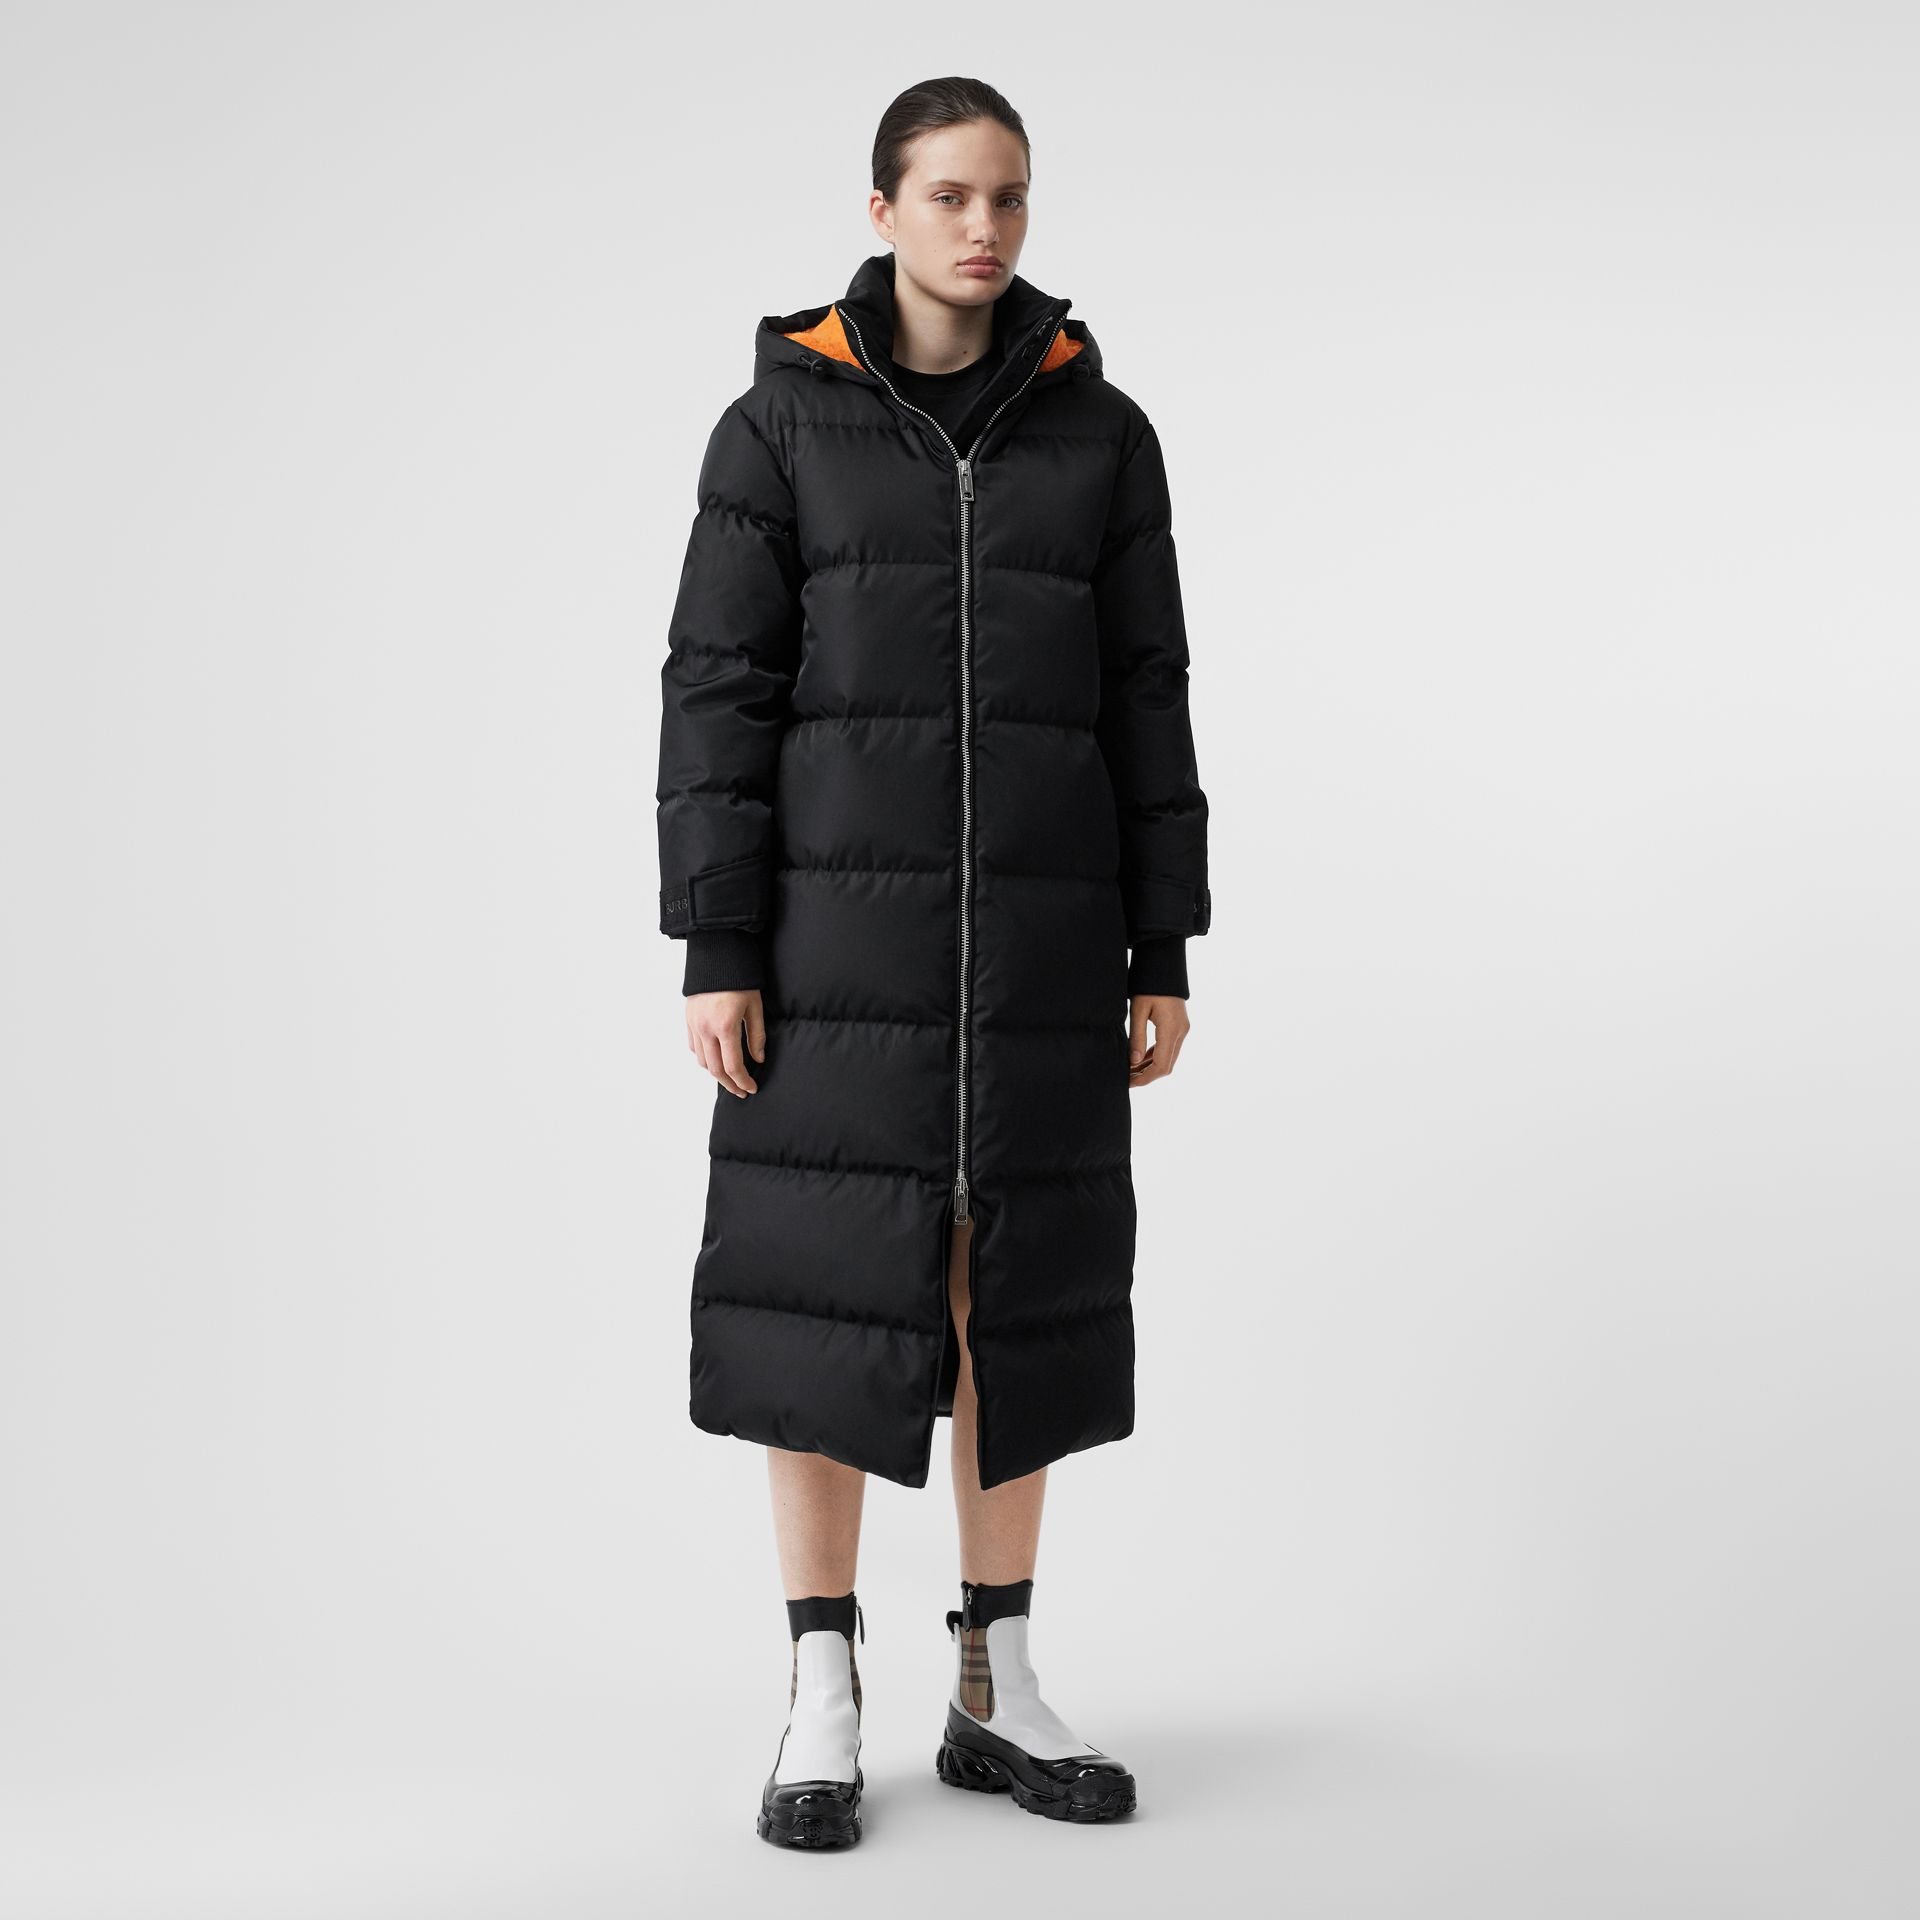 Logo Detail ECONYL® Puffer Coat in Black/orange - Women | Burberry United States - gallery image 6